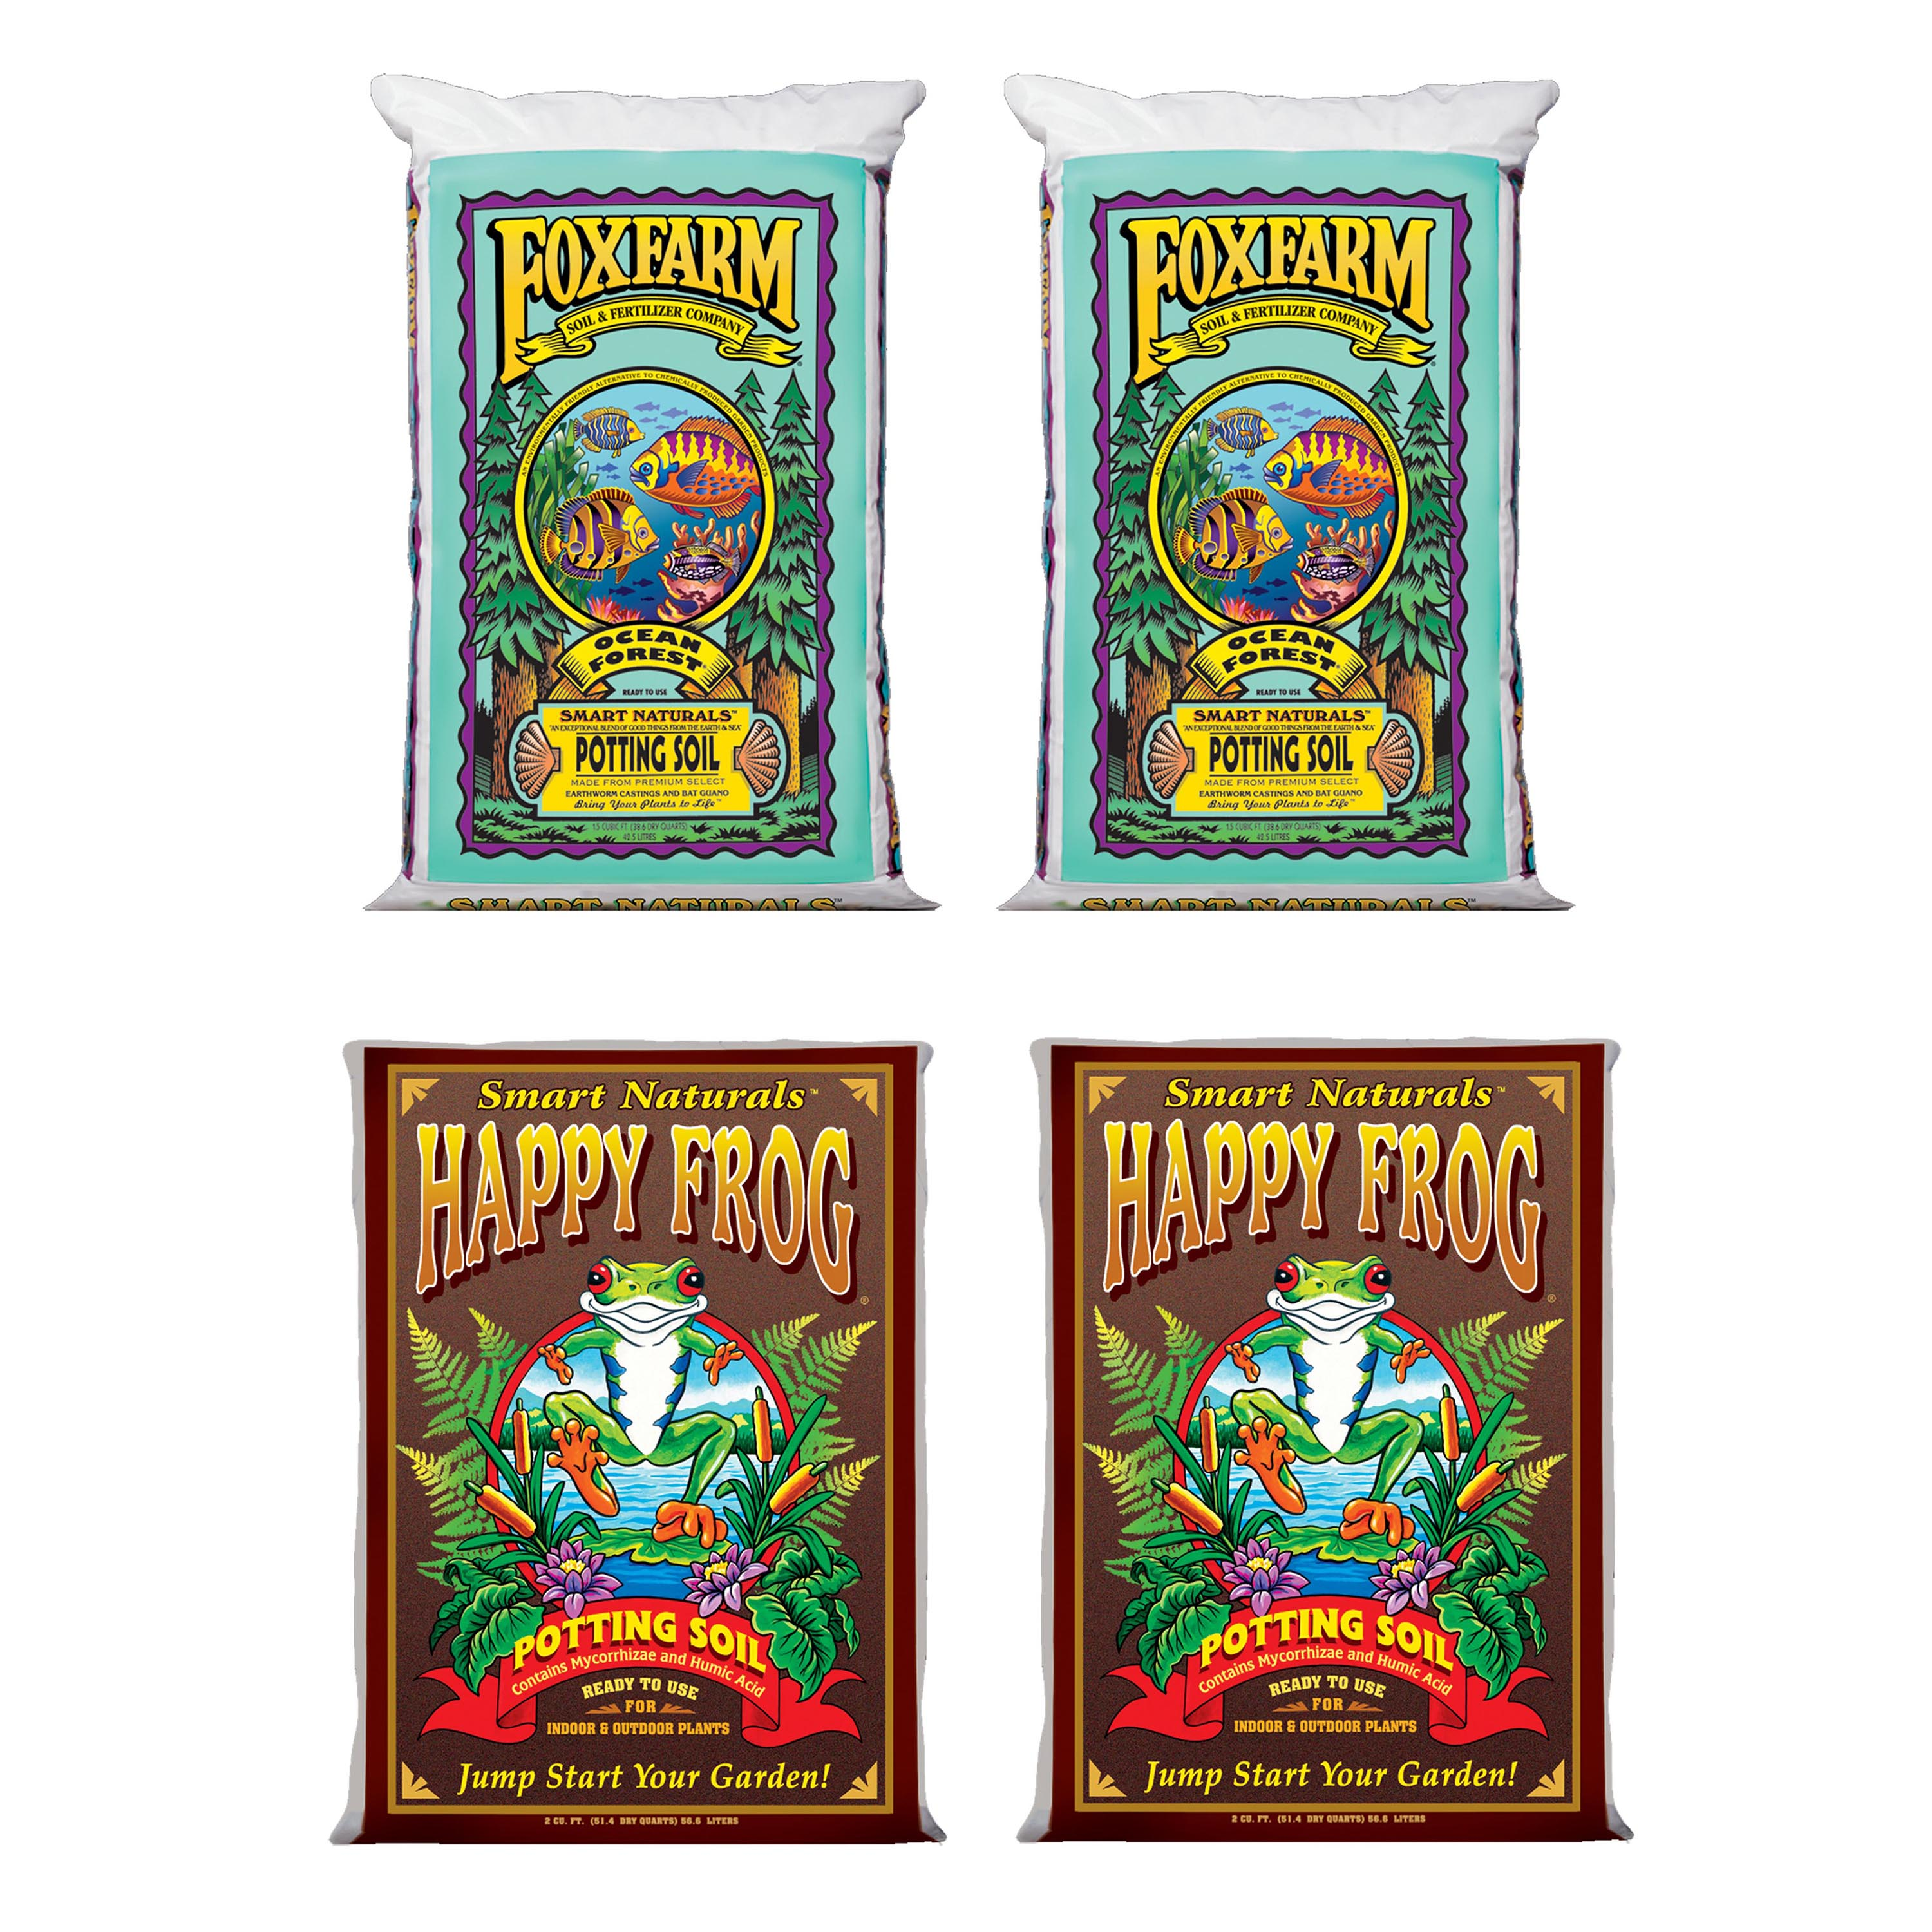 FoxFarm Ocean Forest Garden Soil Mix (2) + Happy Frog Organic Pot Soil Mix (2)